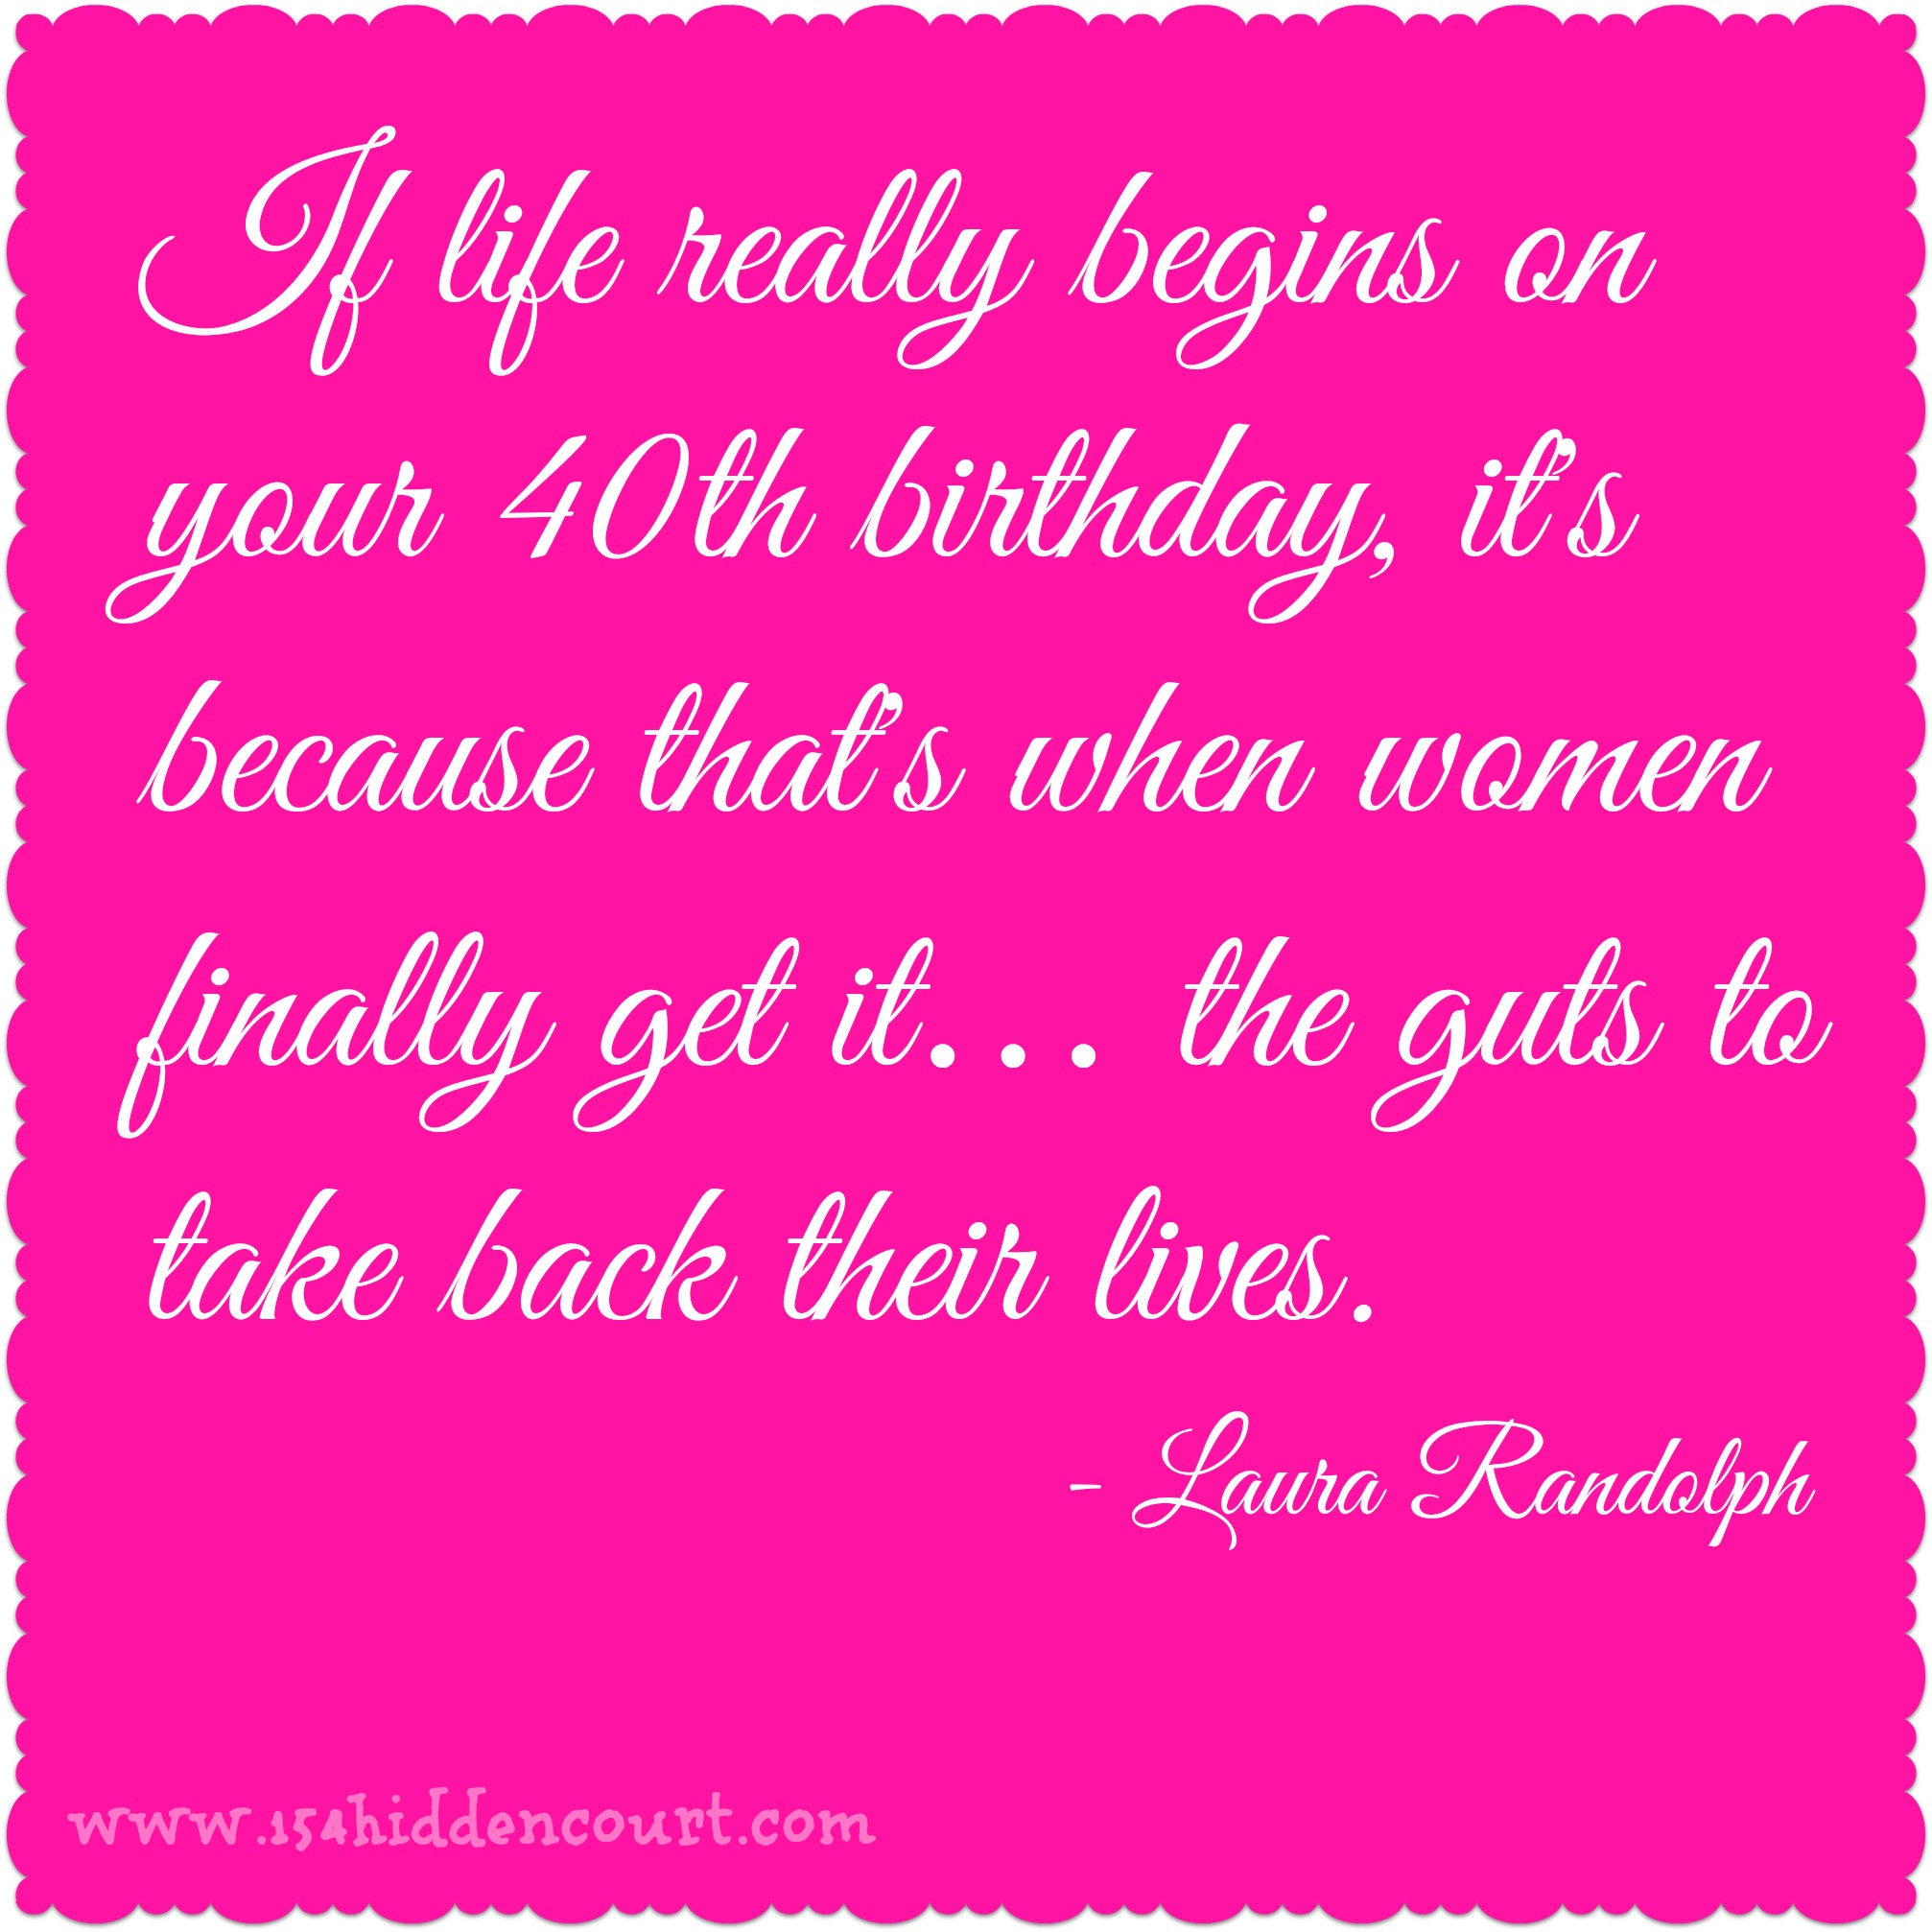 40th Birthday Quotes For Women. QuotesGram